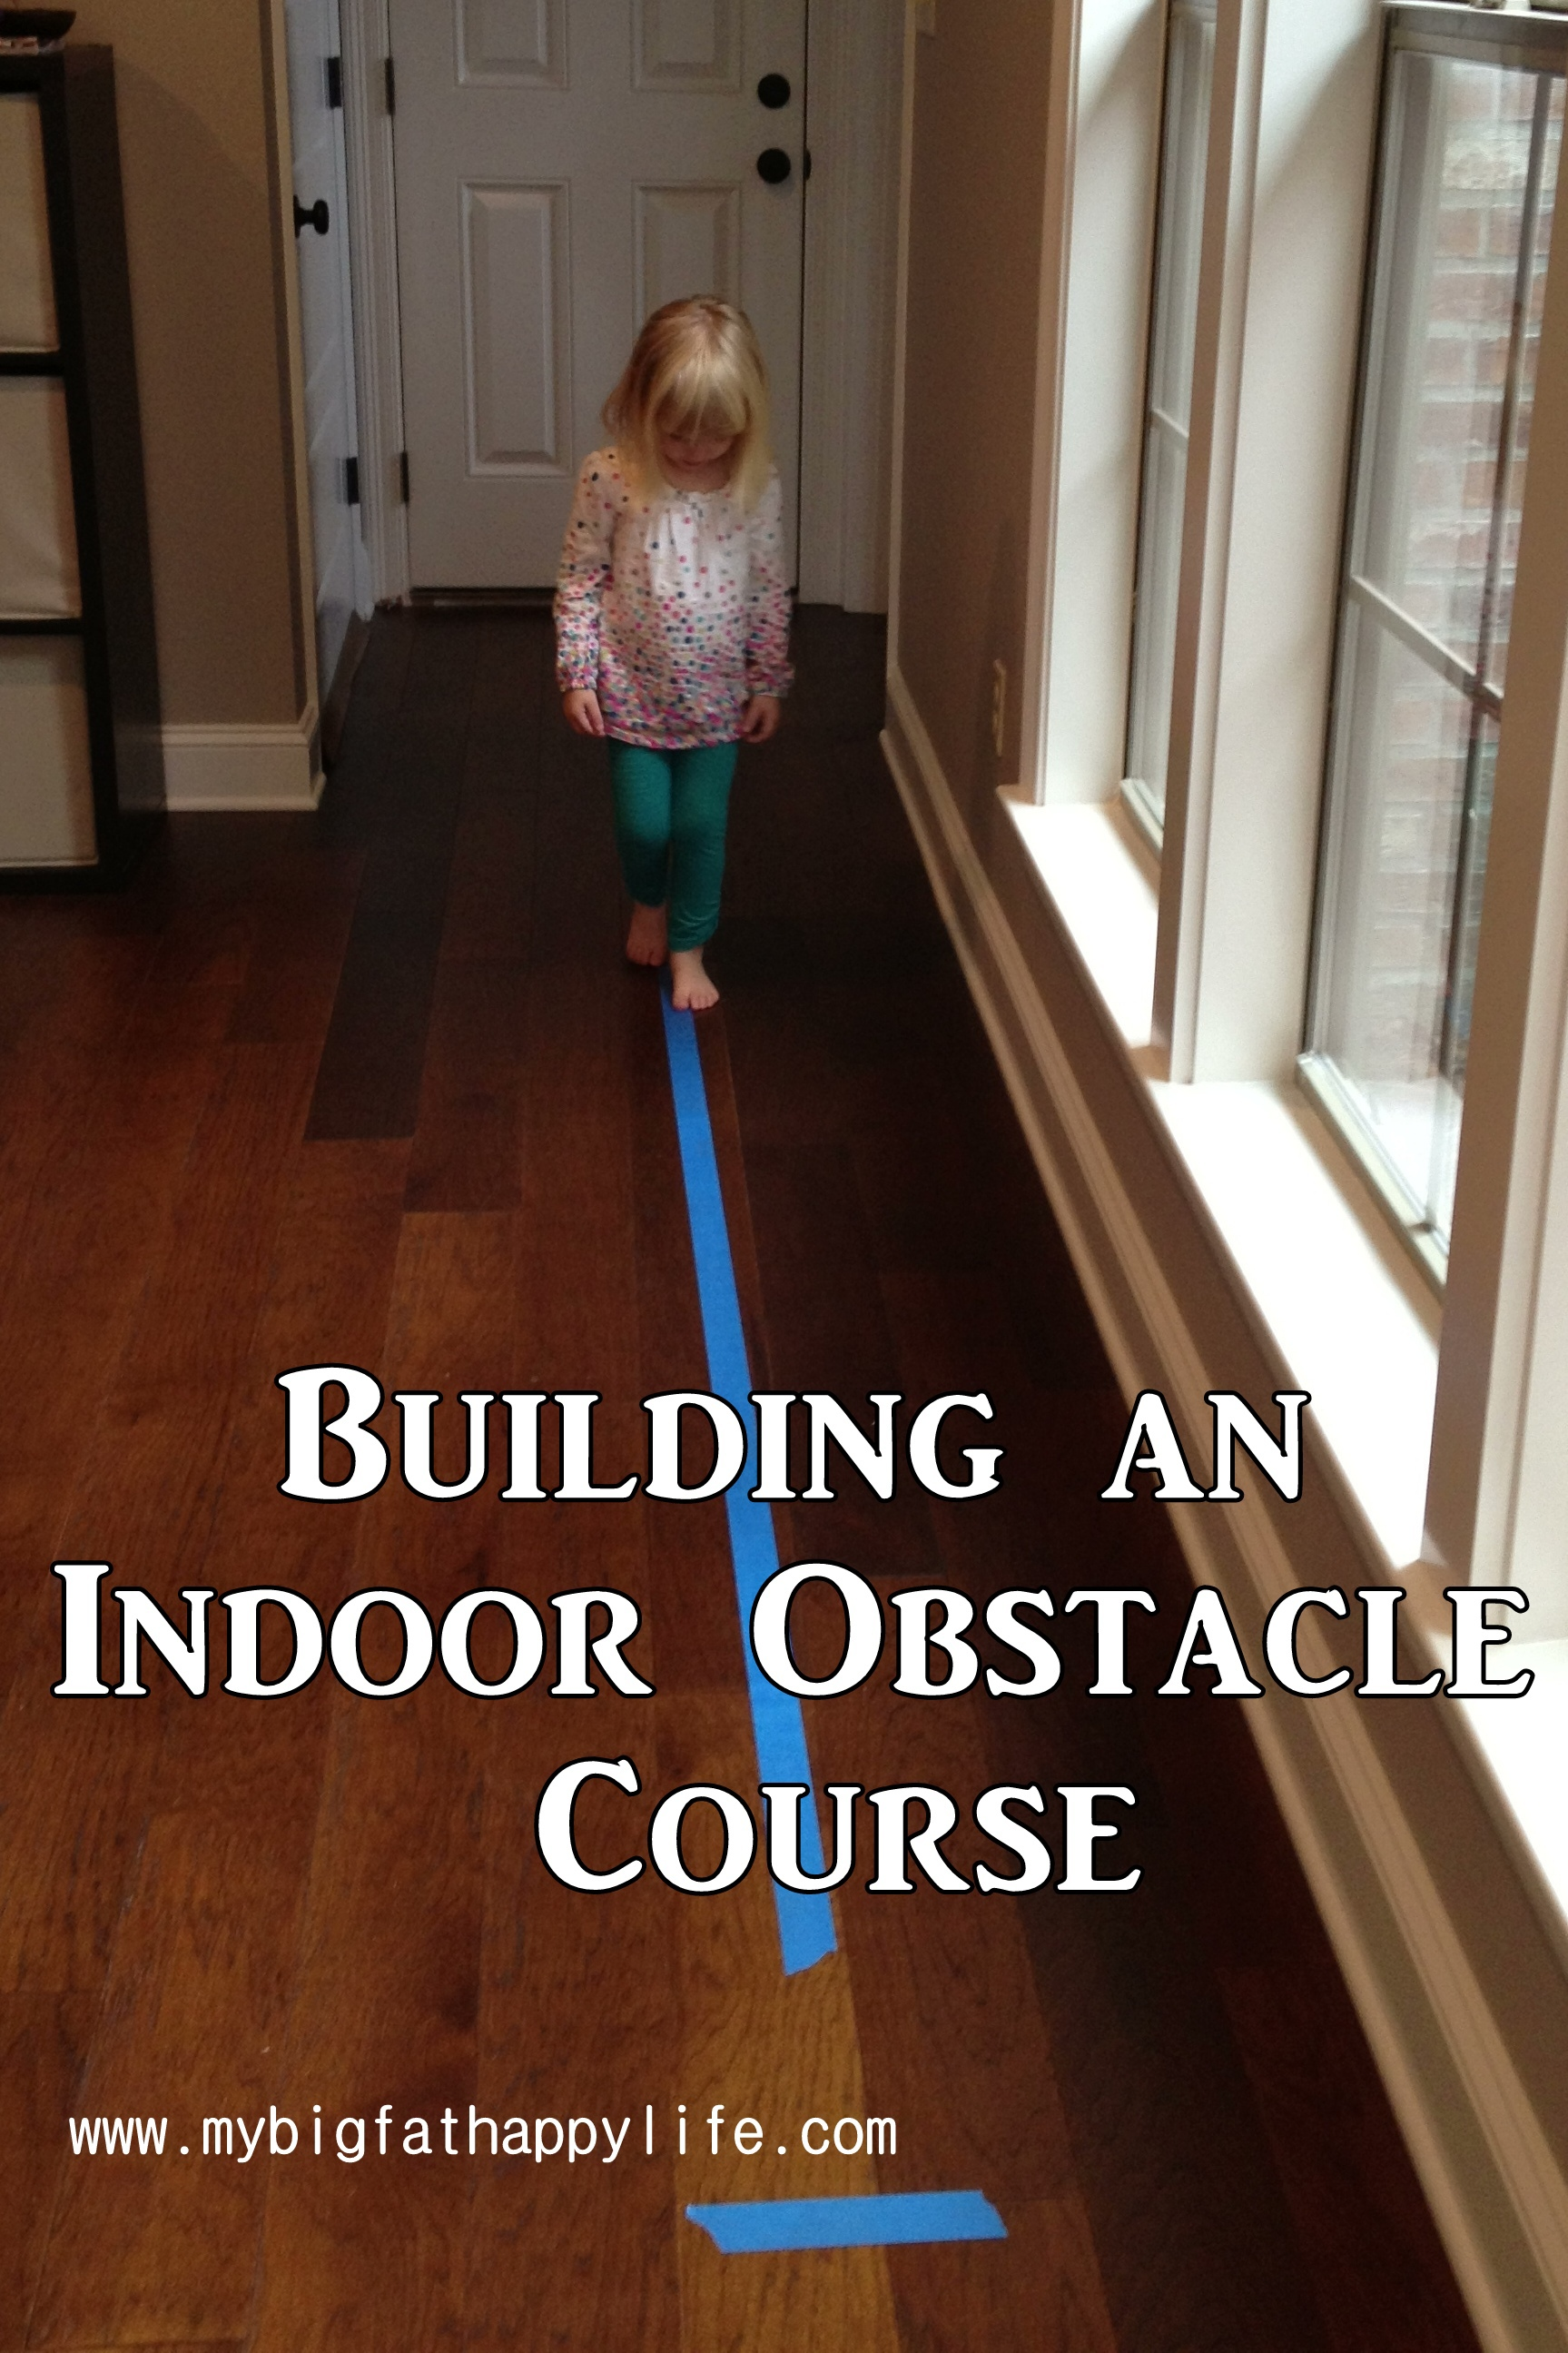 Building An Indoor Obstacle Course My Big Fat Happy Life